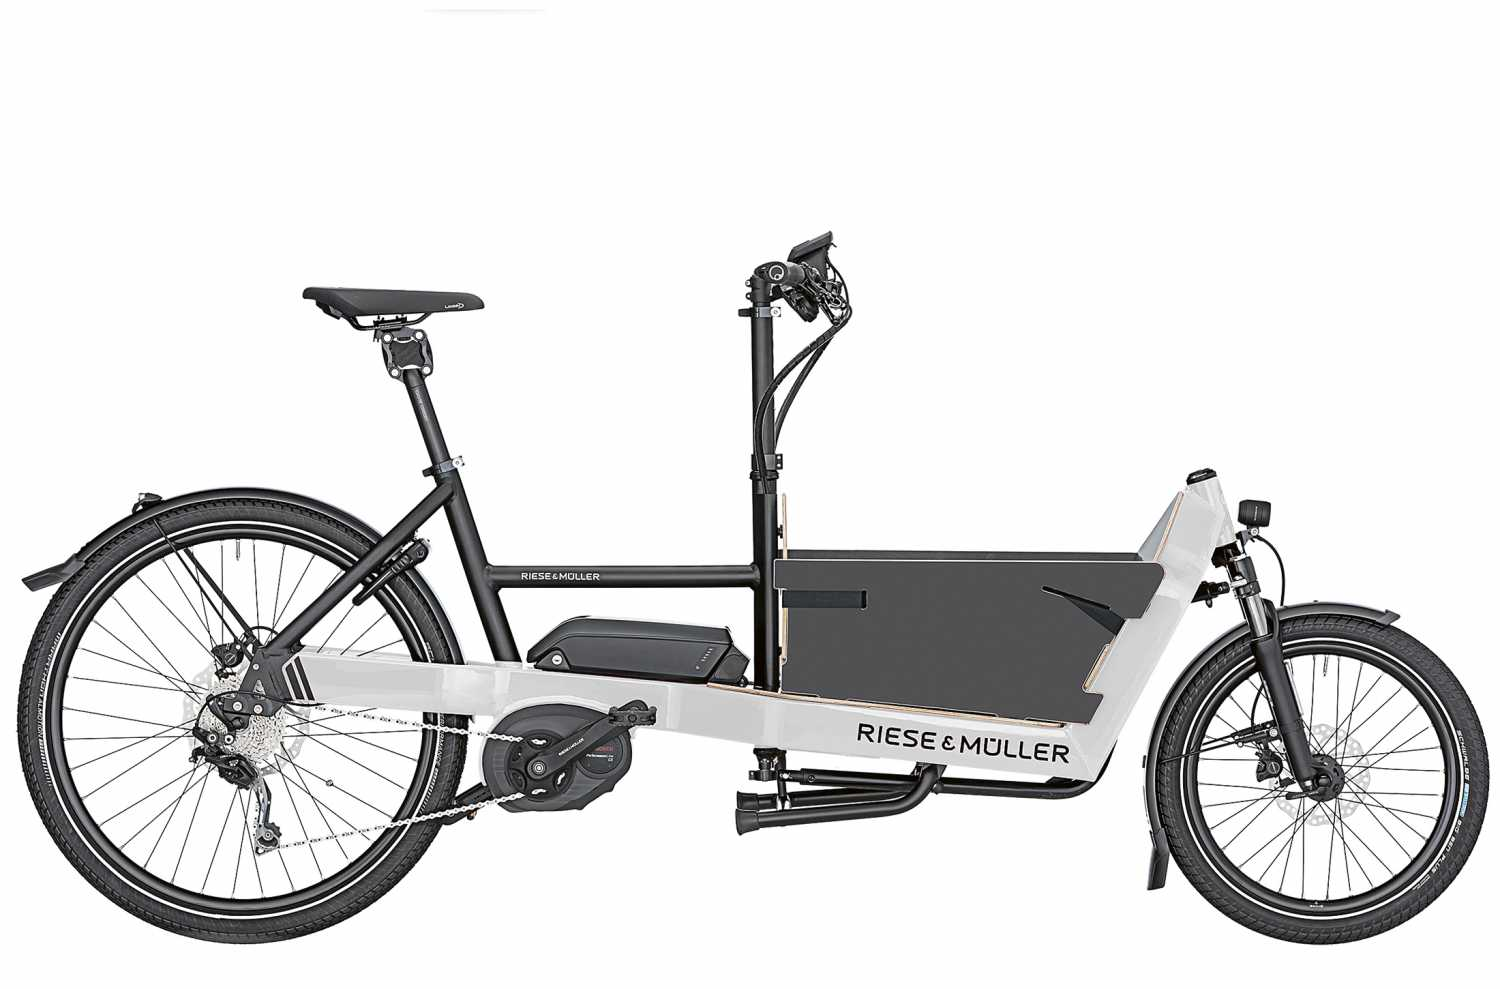 Riese & Müller Packster 40 touring 2018